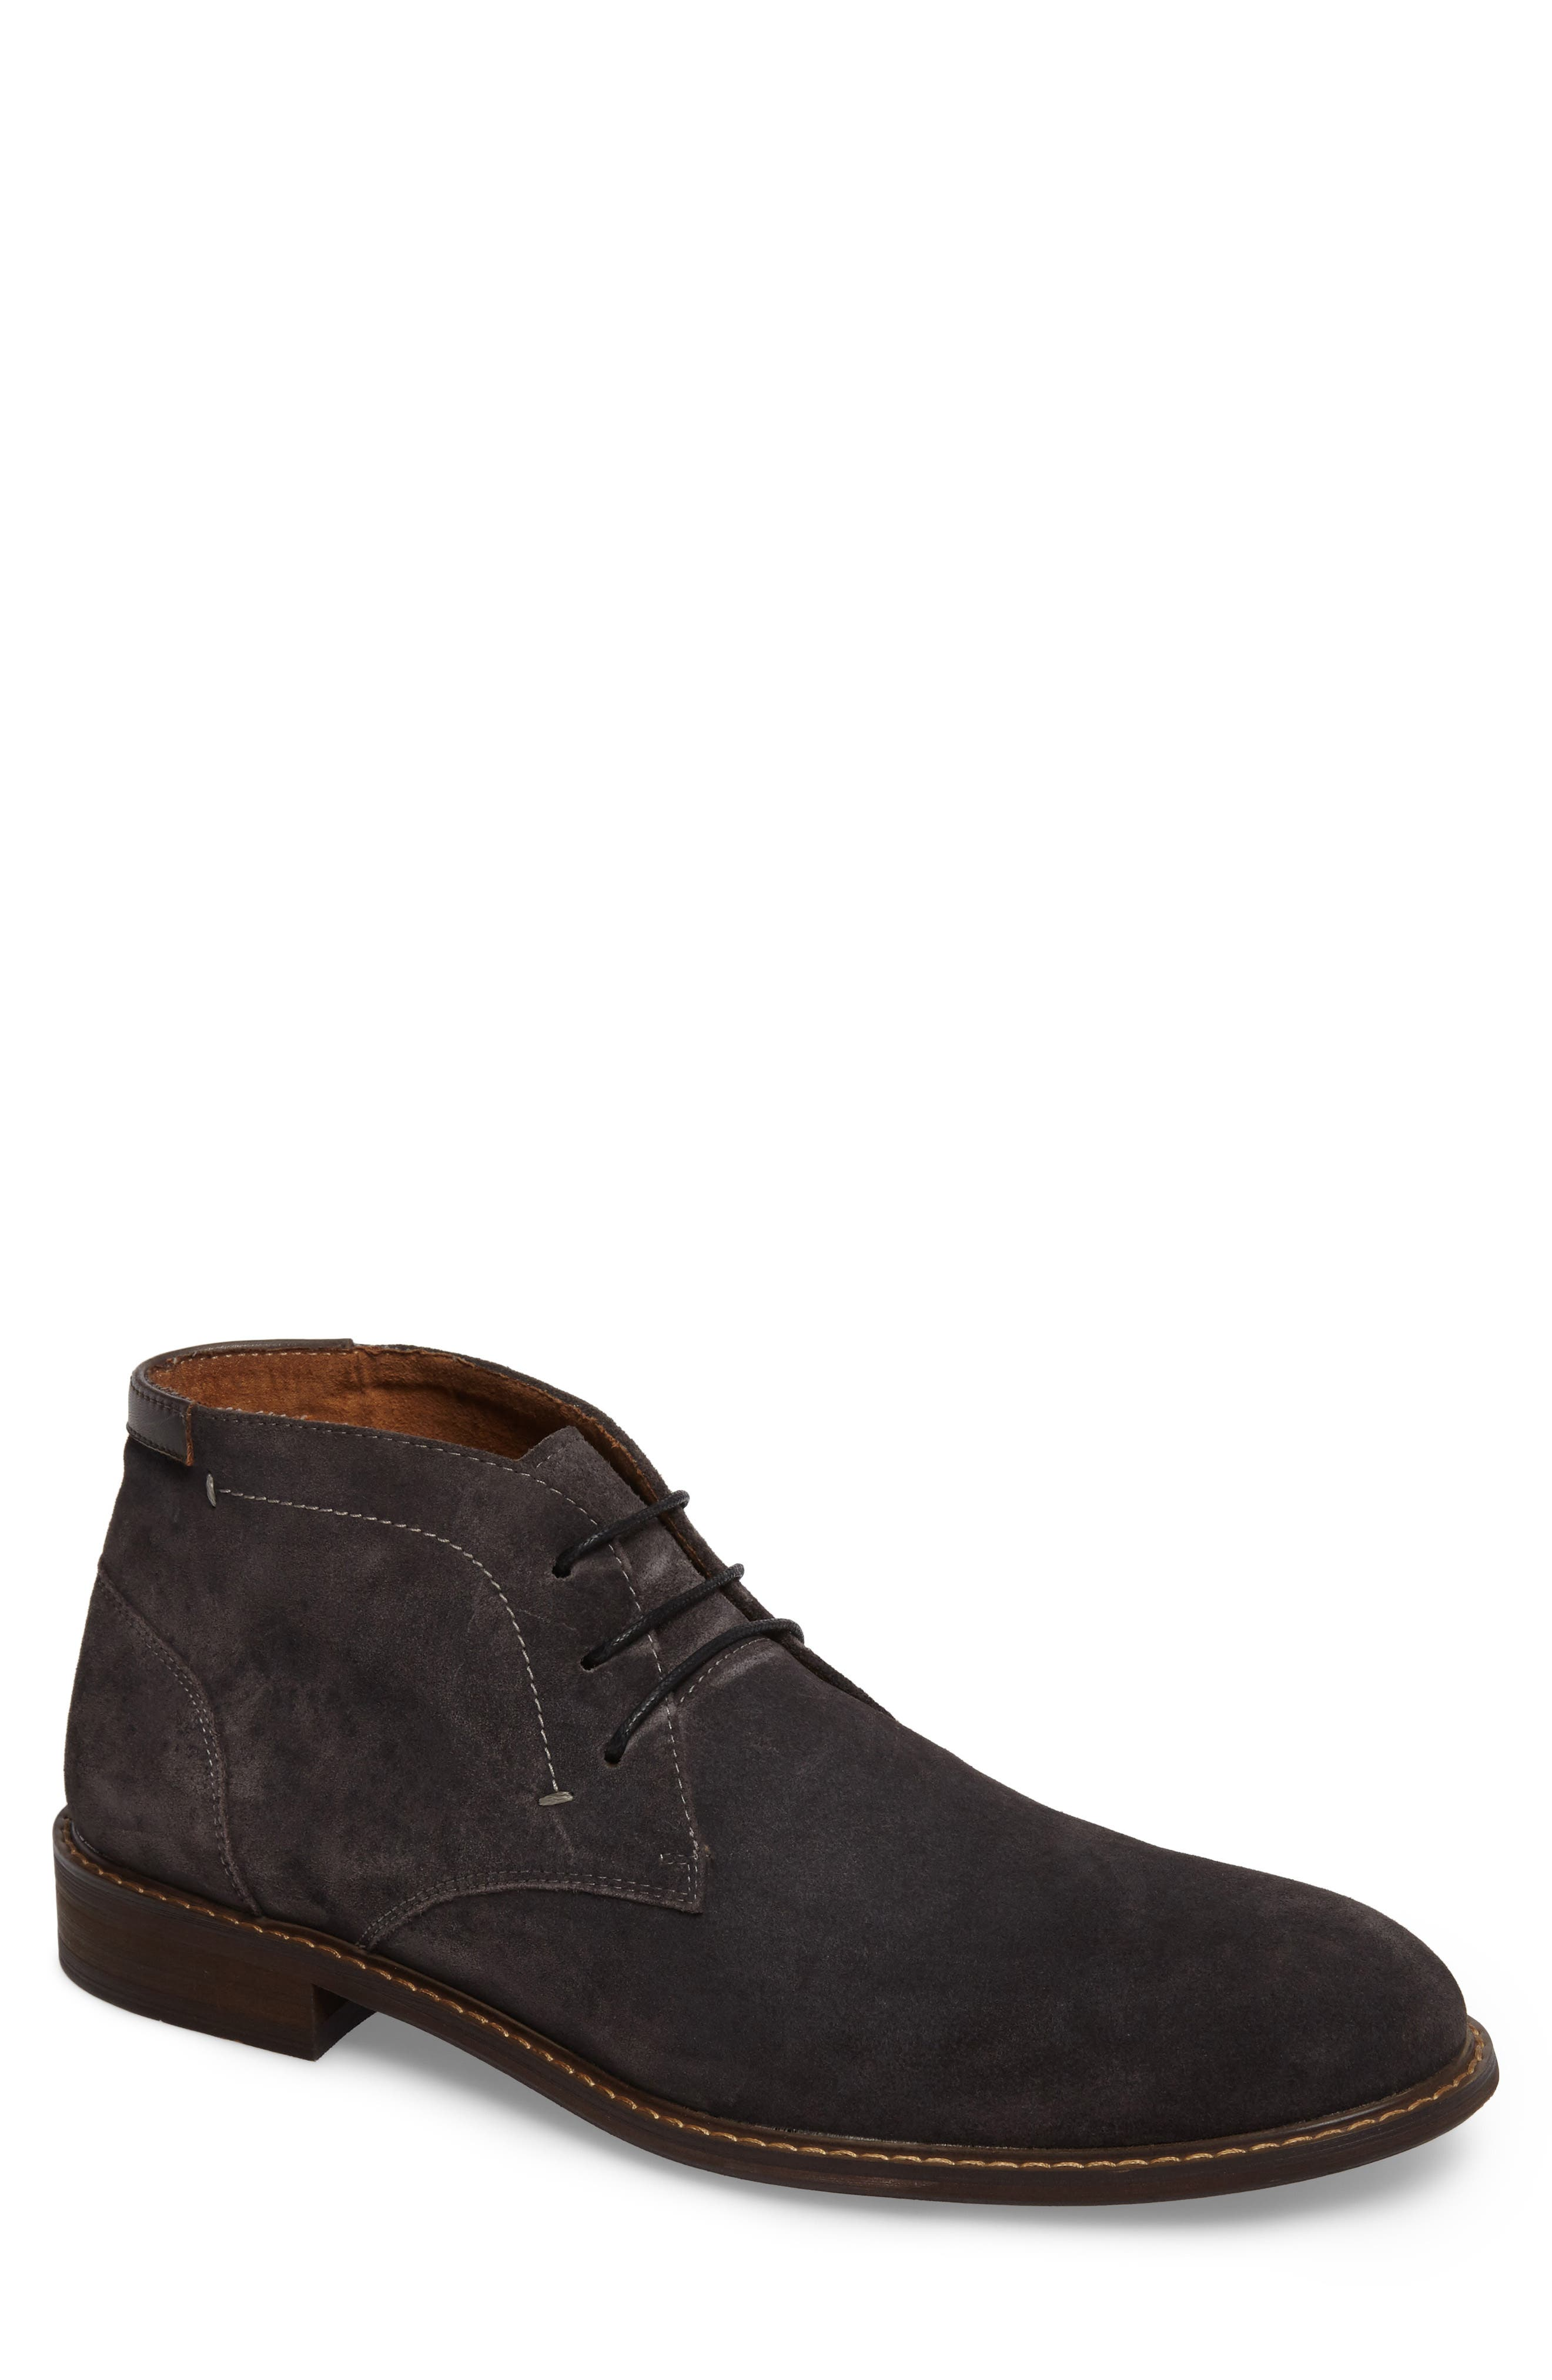 Chlesea Boot,                         Main,                         color, 020